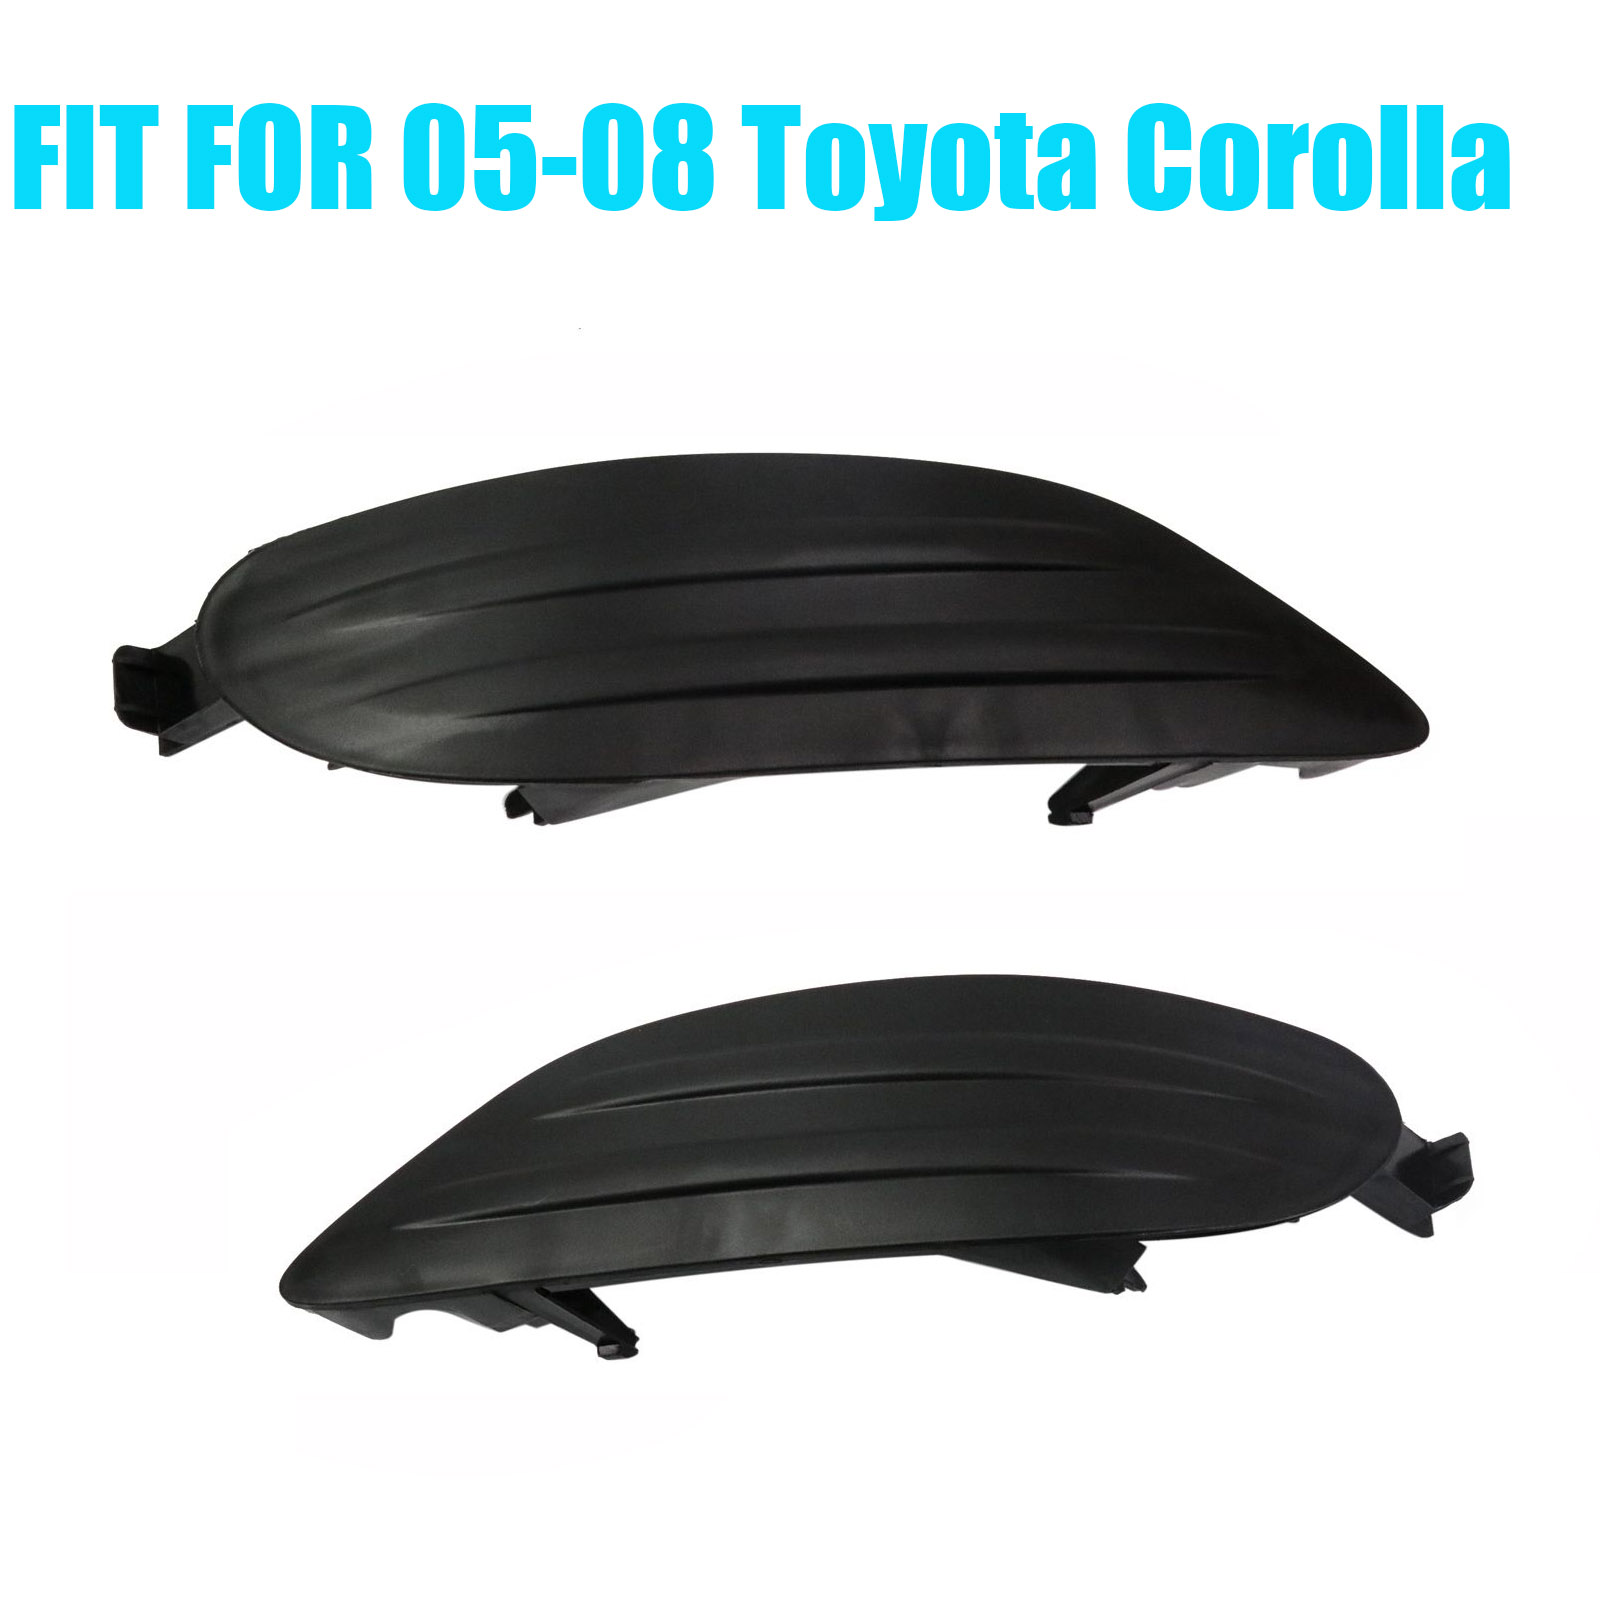 New Passenger Side Fog Light Cover For Toyota Corolla 2005-2008 TO1039107